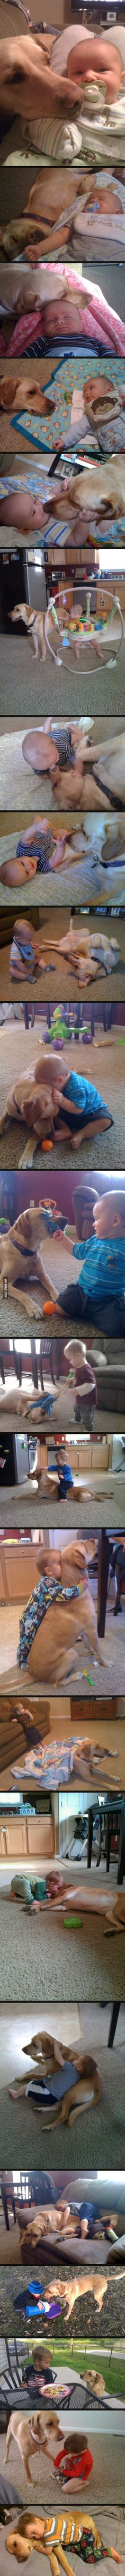 Best friends for 2 1/2 years... -- this makes my heart melt.. so sweet